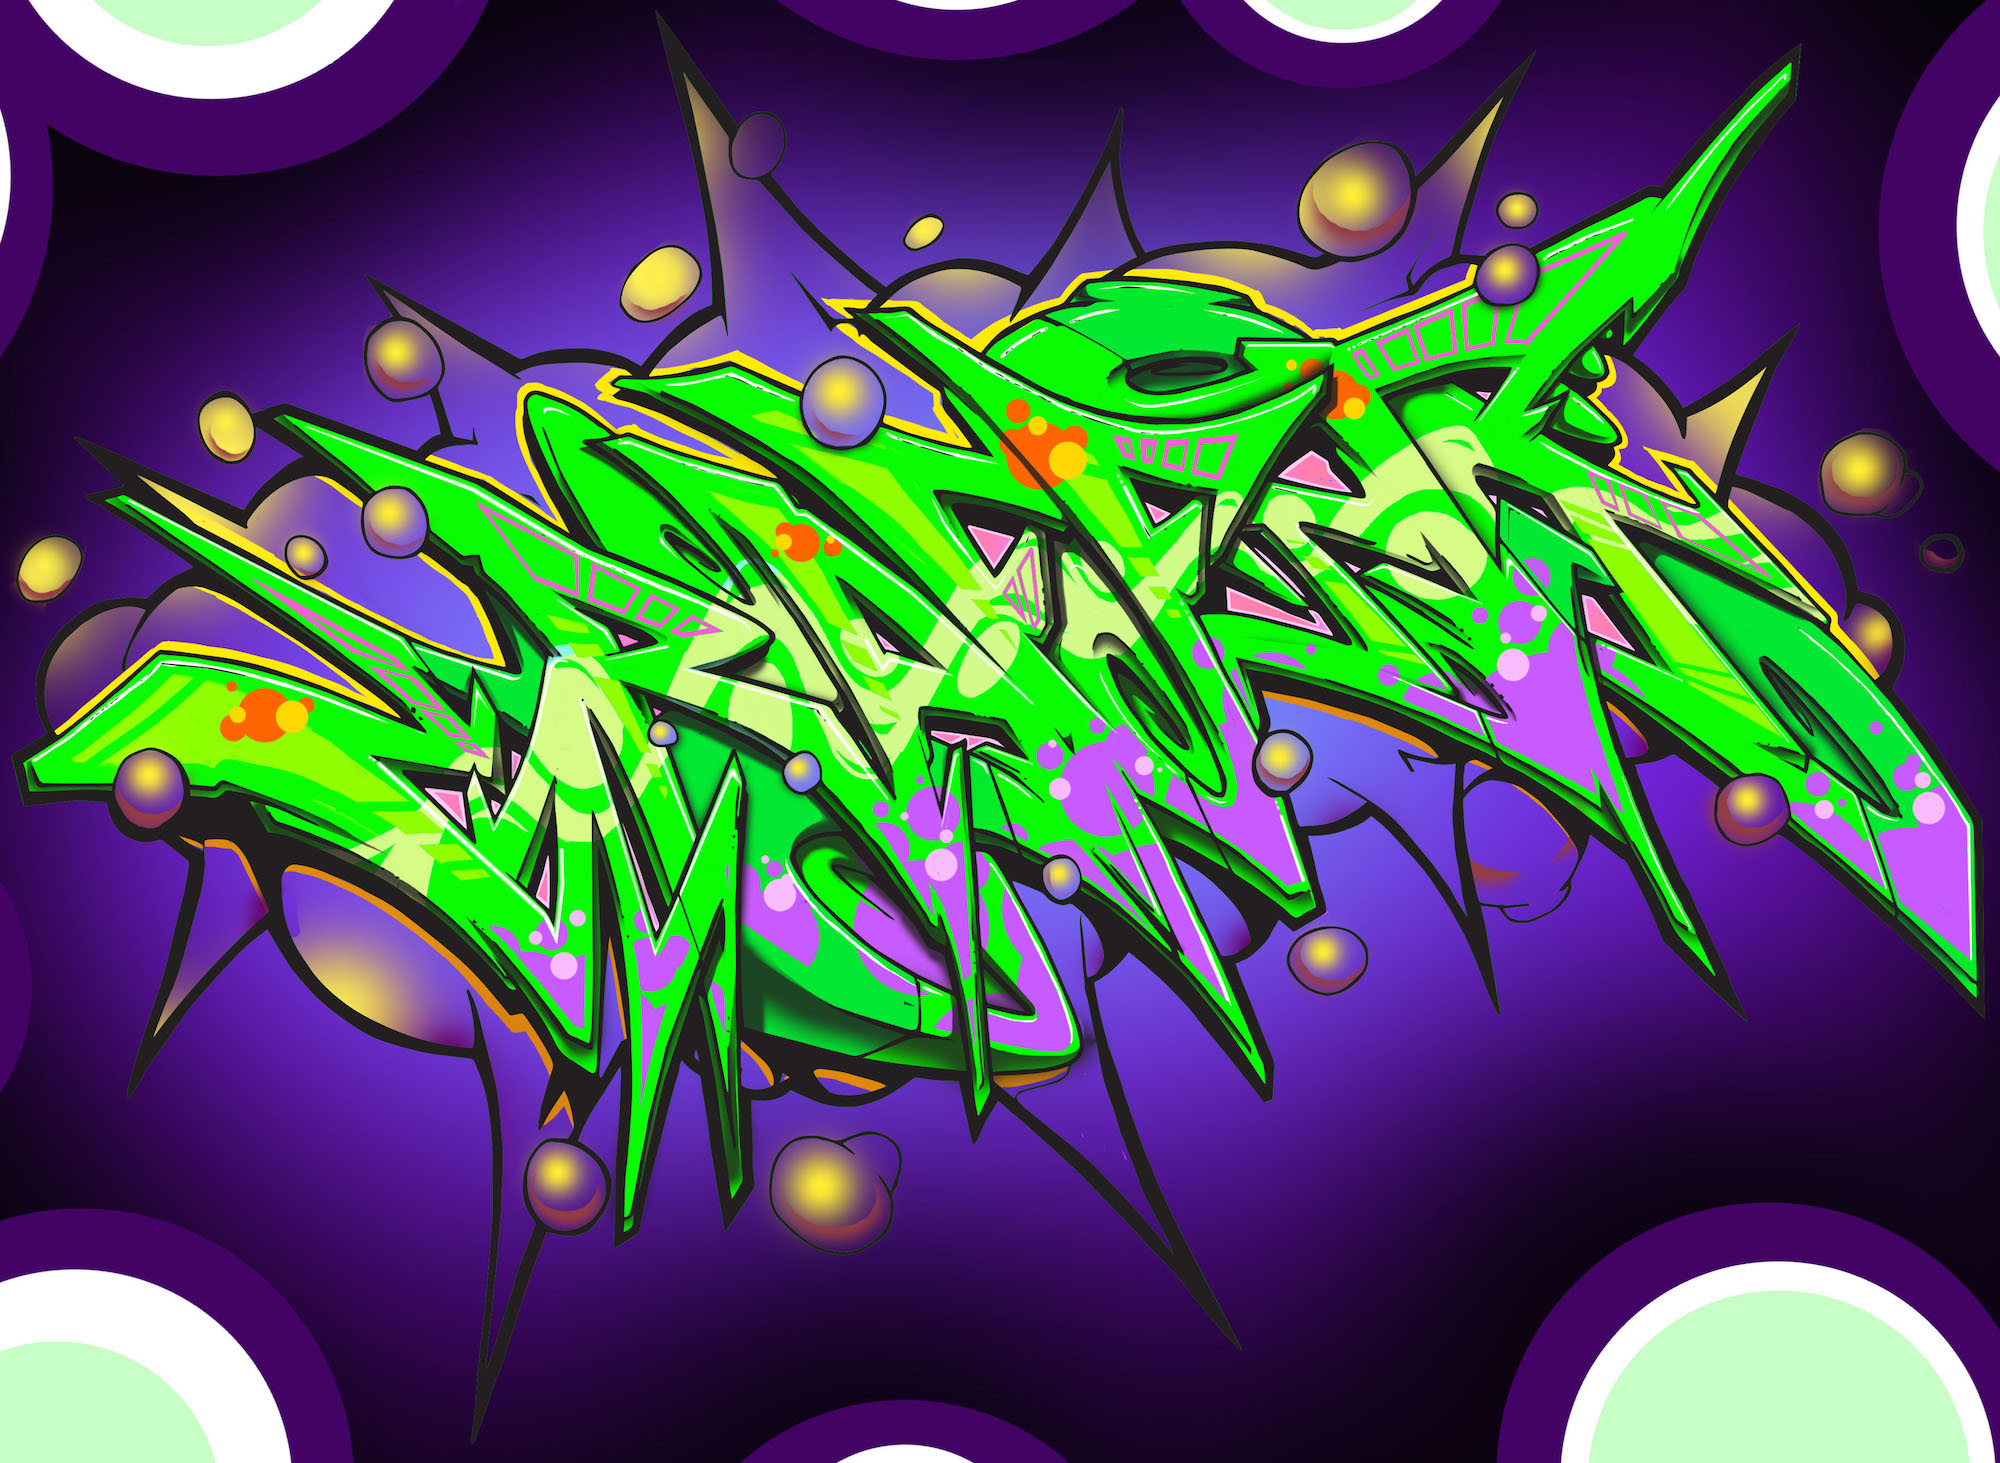 eazy83.graffitiletters.purplecloud.color.paperchasing copy.jpg